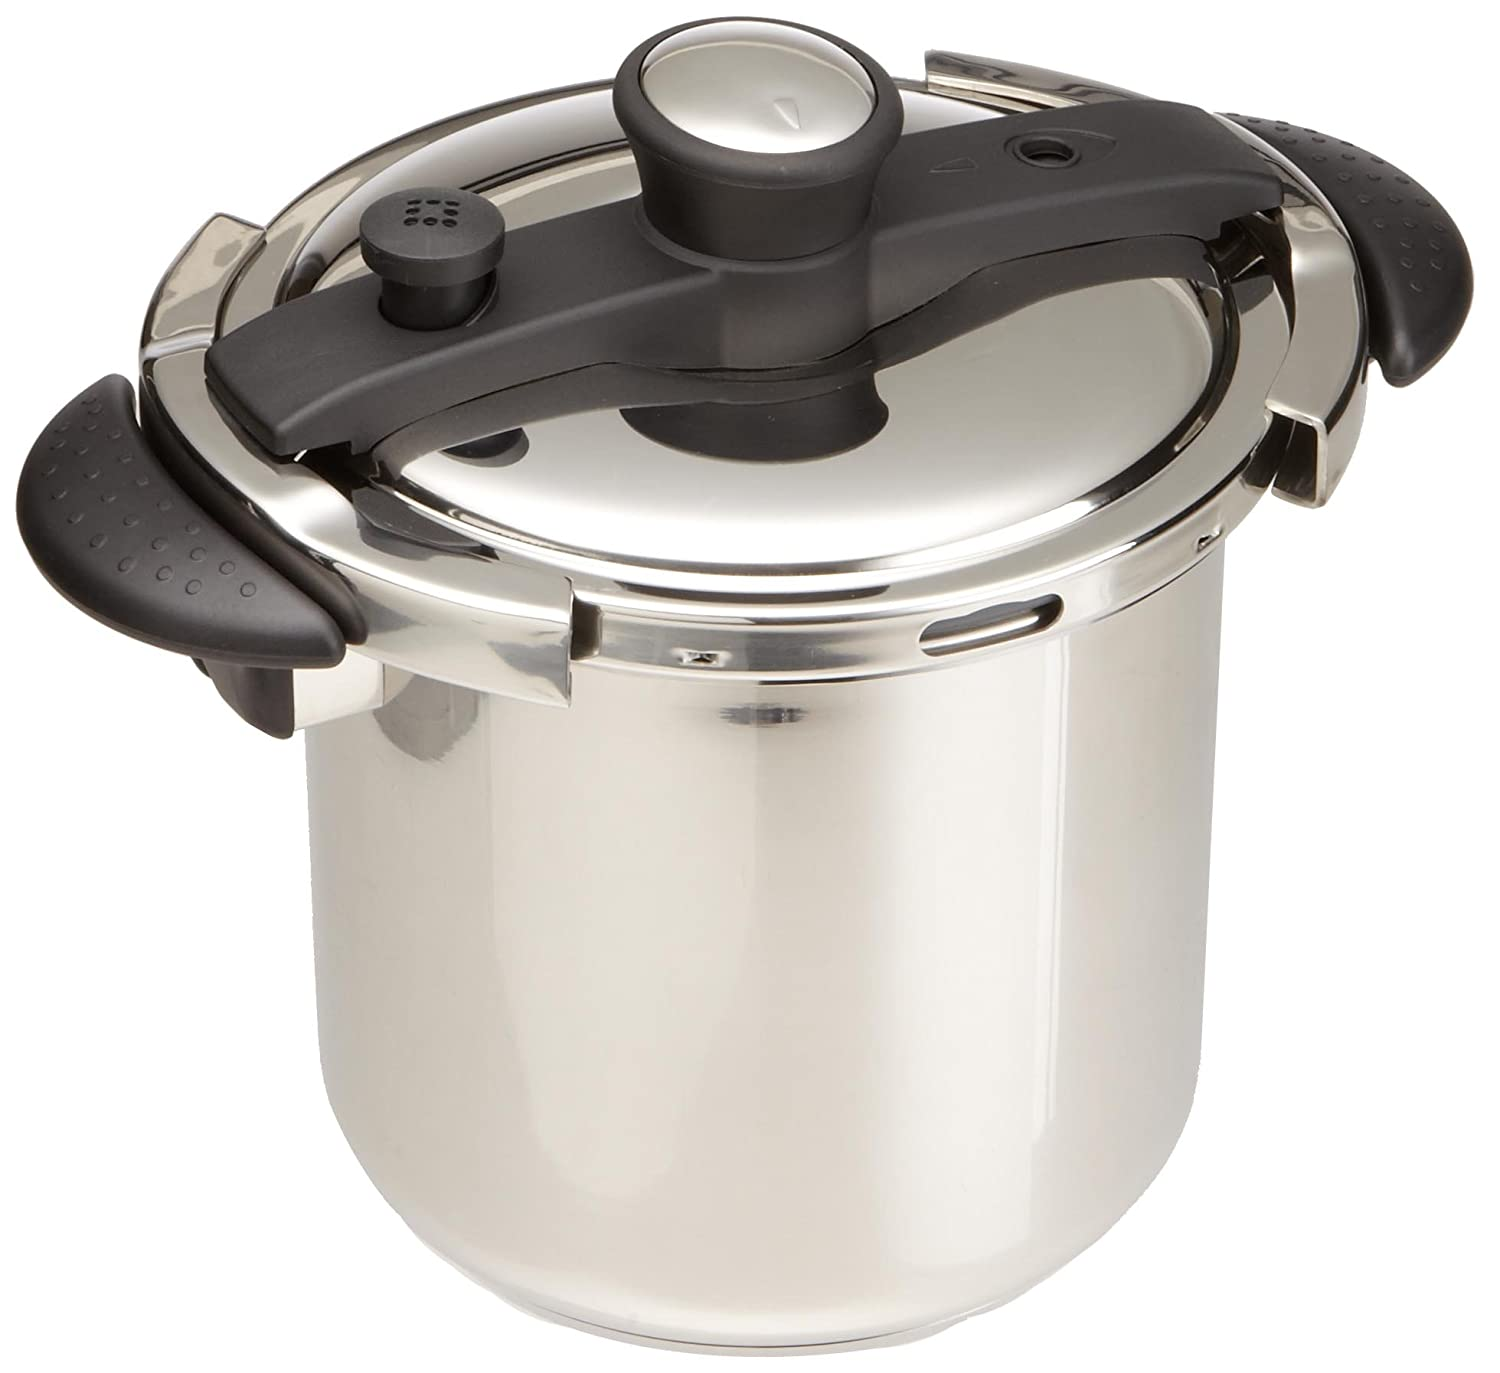 Amazon Concord Cookware Stainless Steel Pressure Cooker 8 Quart Kitchen Dining